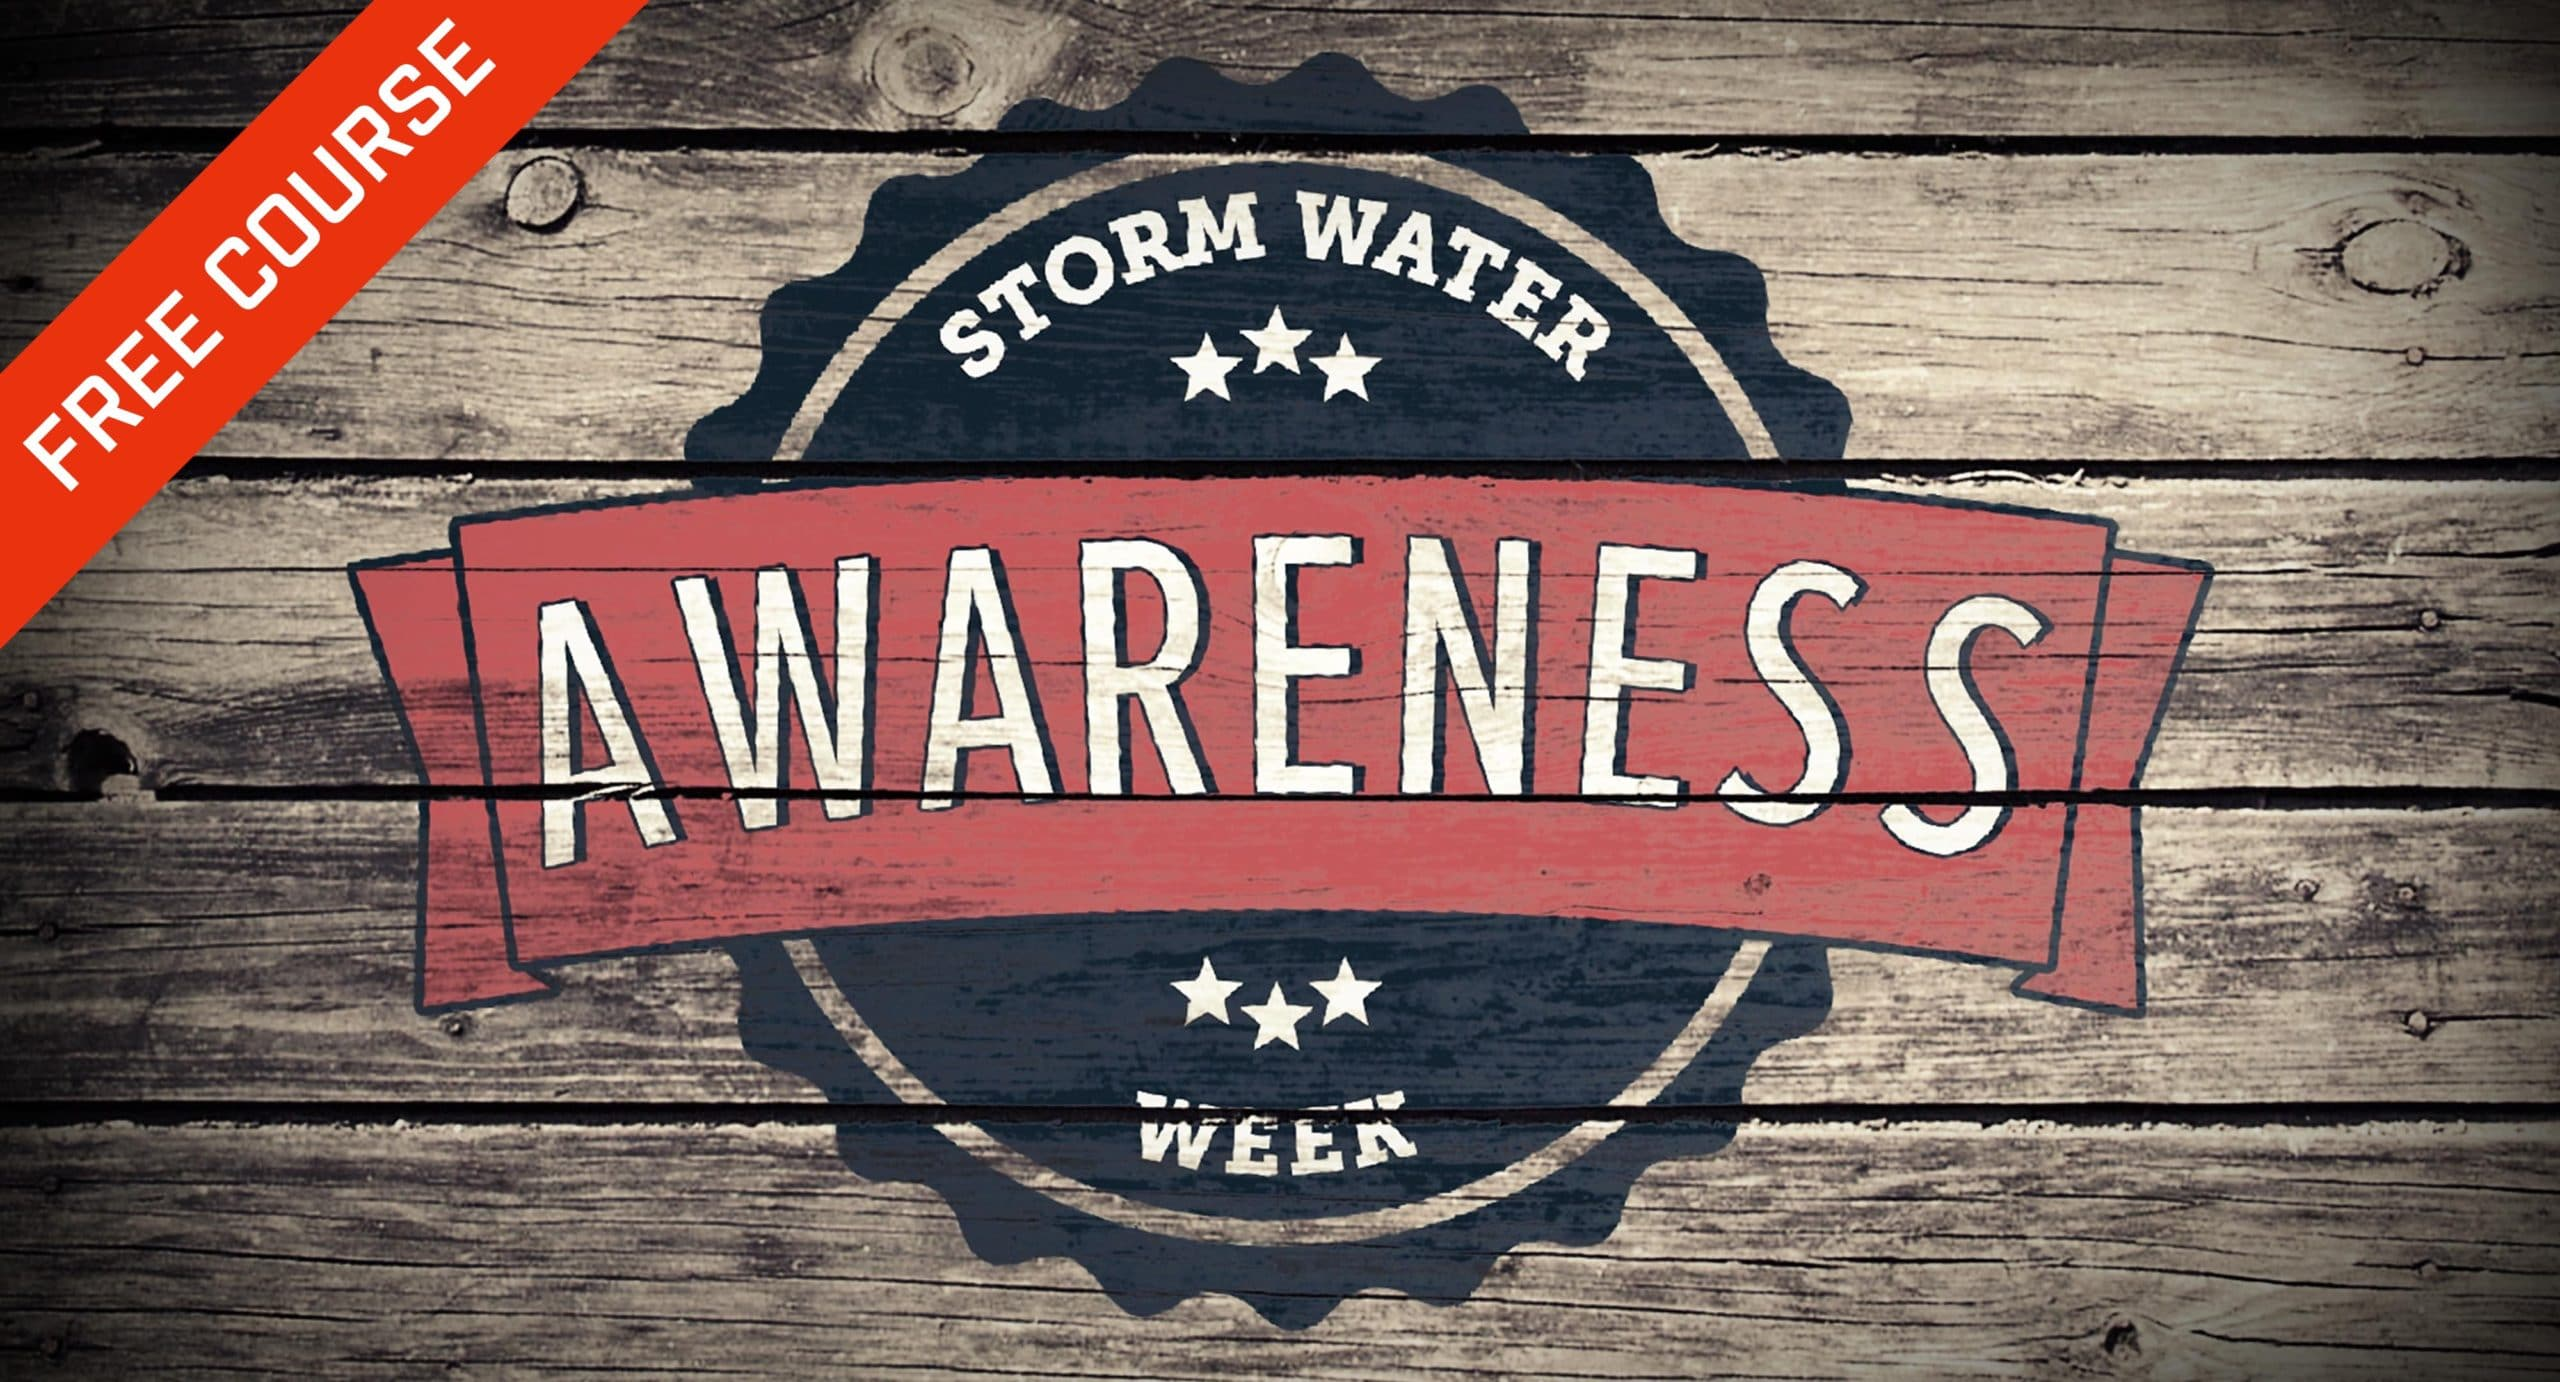 Storm Water Awareness Week 2015